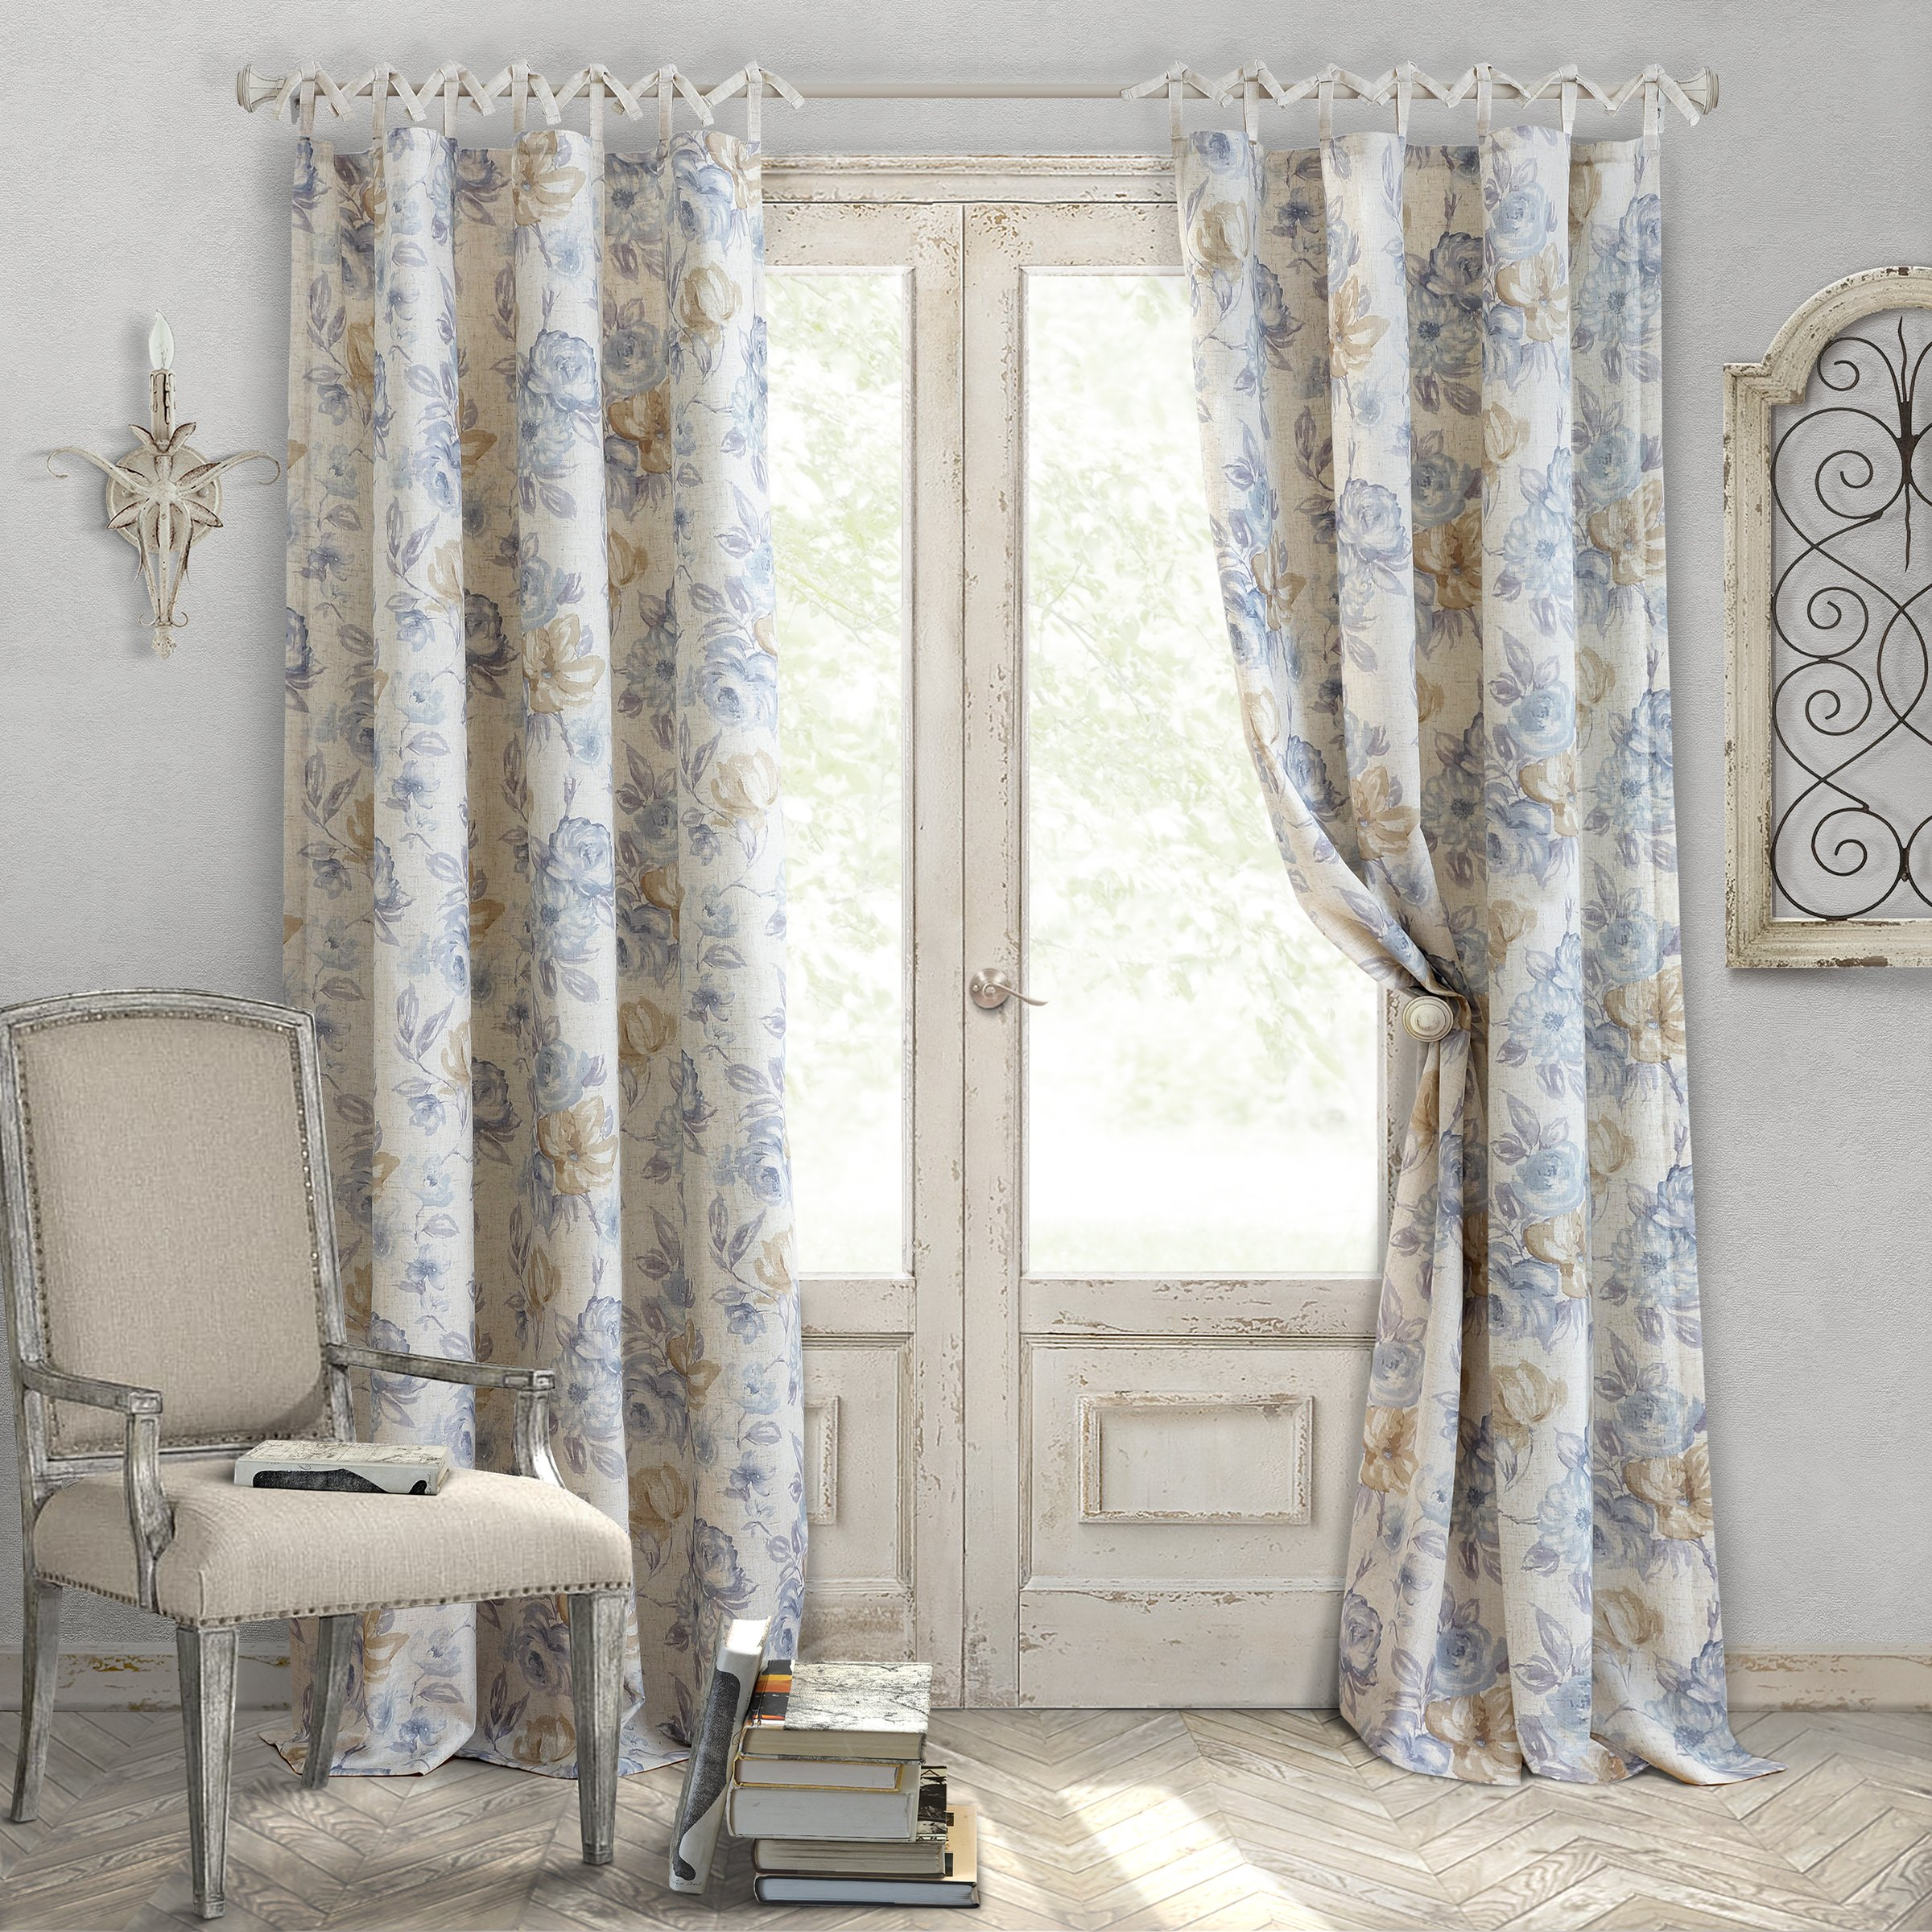 Elrene Home Fashions Country Chic Linen Non-Adjustable Tie Top Single Panel Window Curtain Drape, 52 inch Wide x 95 inch Long, Blue (1 Panel)